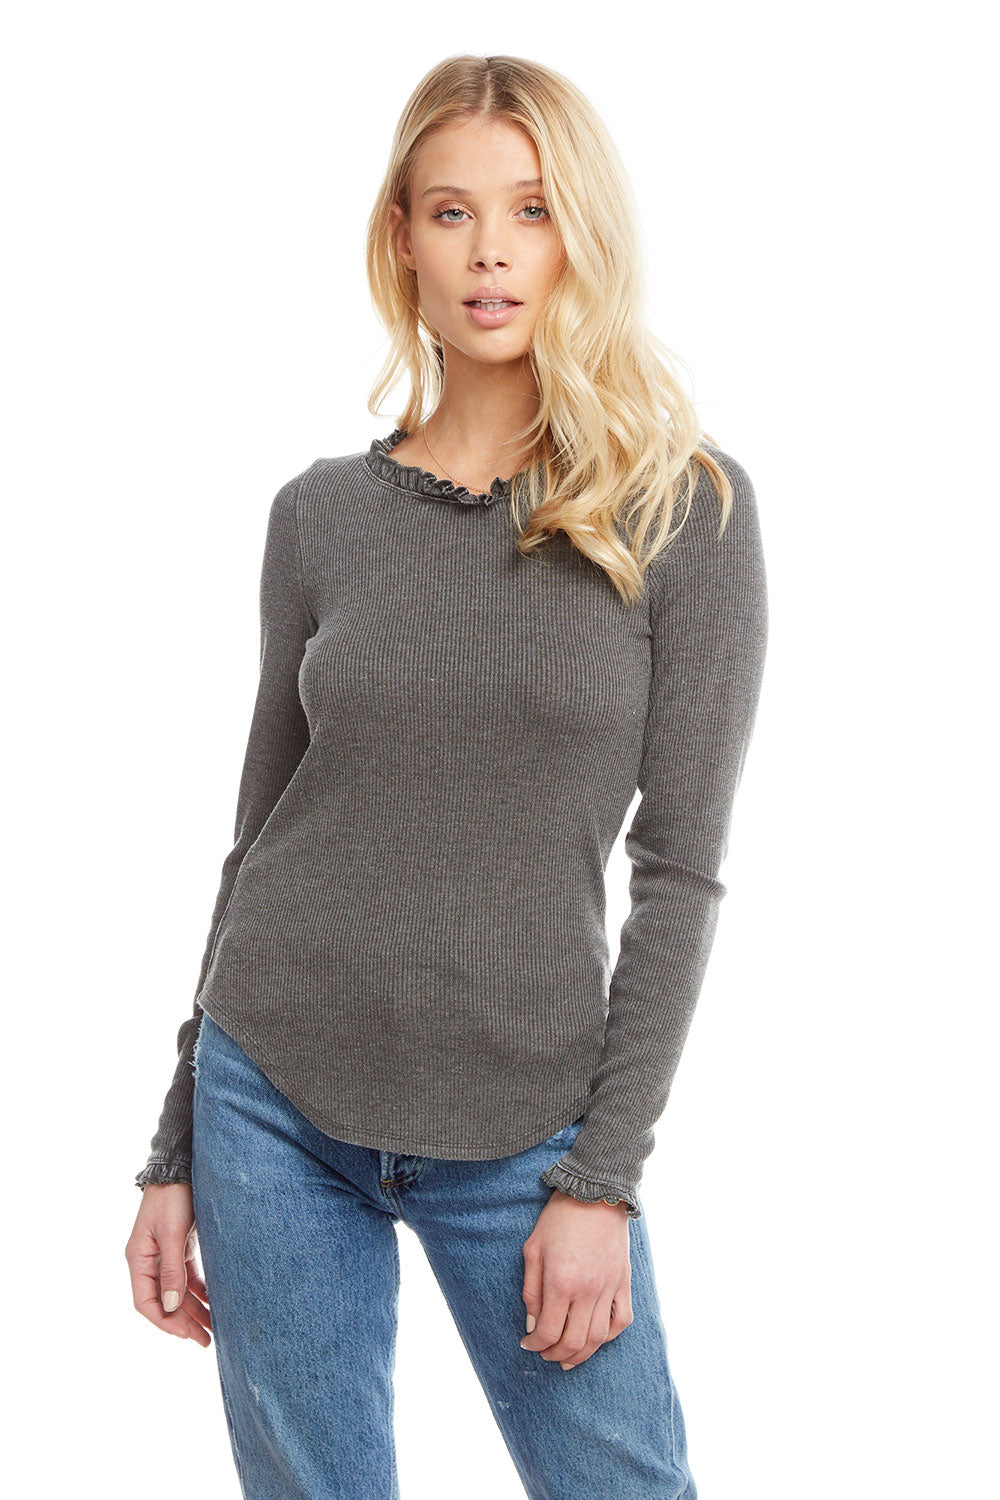 Cozy Rib Long Sleeve Ruffle Shirttail Open Neck Tee, WOMENS, chaserbrand.com,chaser clothing,chaser apparel,chaser los angeles